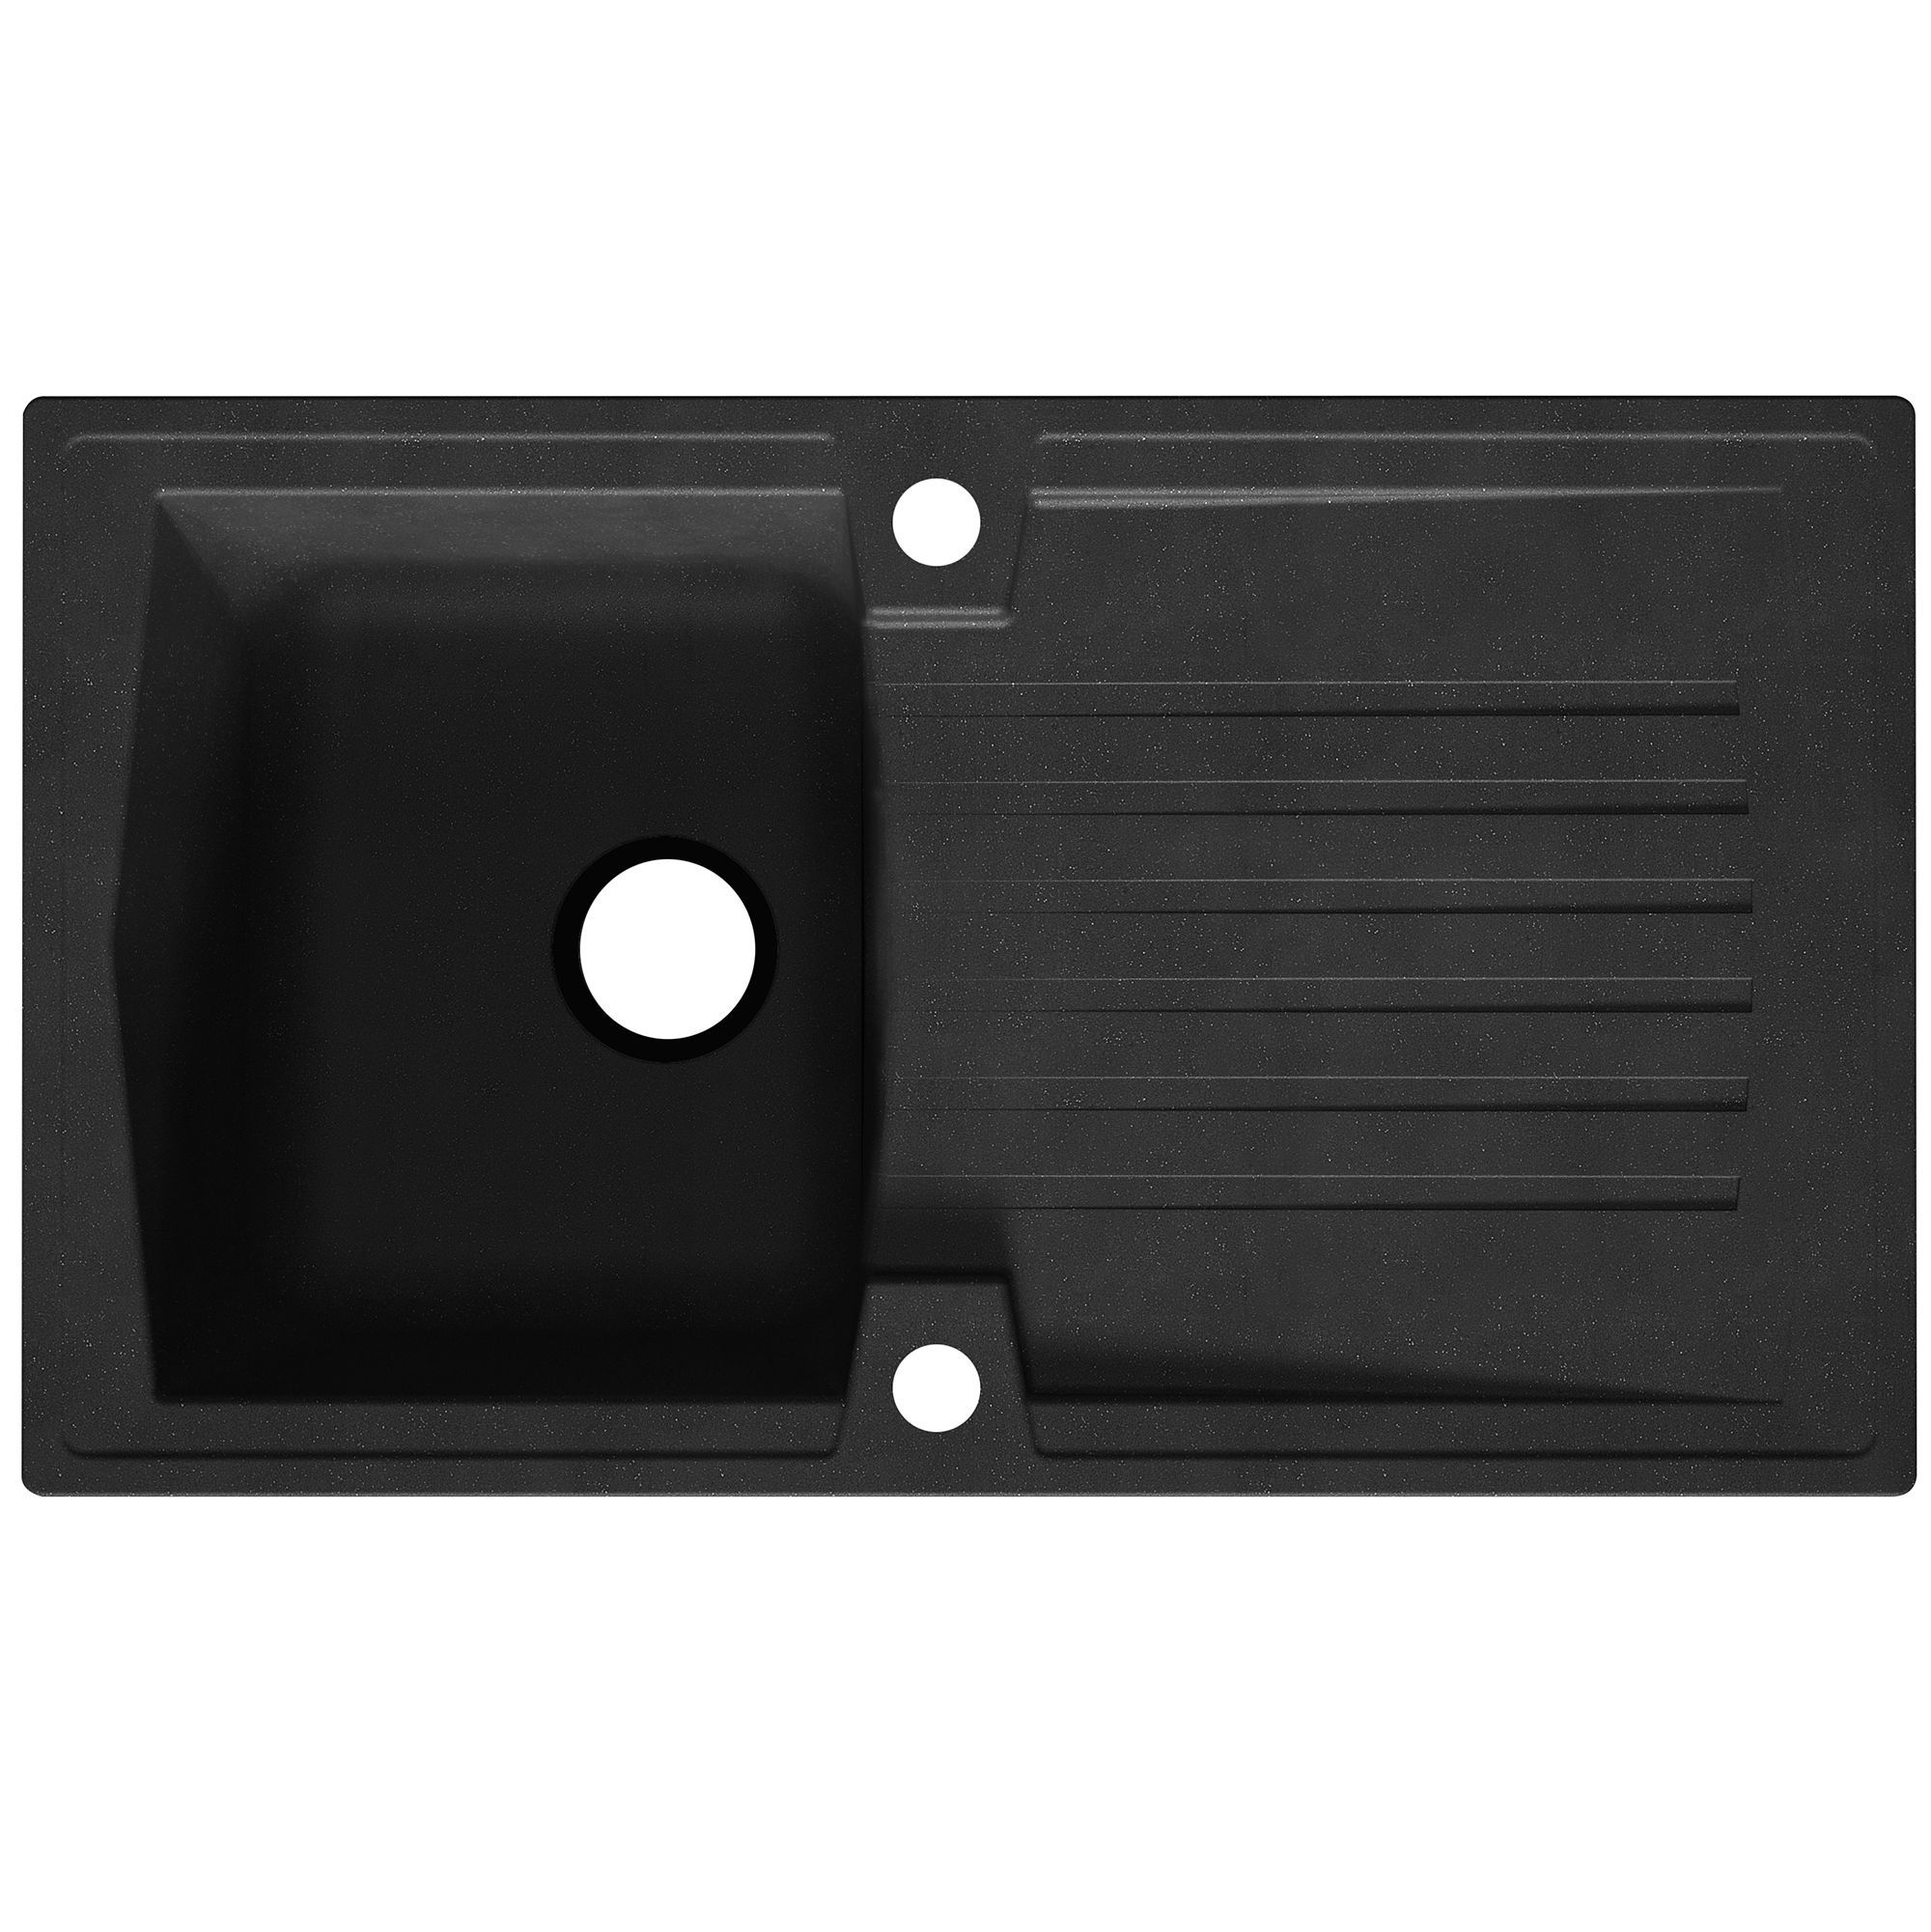 Cooke & Lewis Deluc 1 Bowl Black Resin Kitchen Sink with Reversible ...